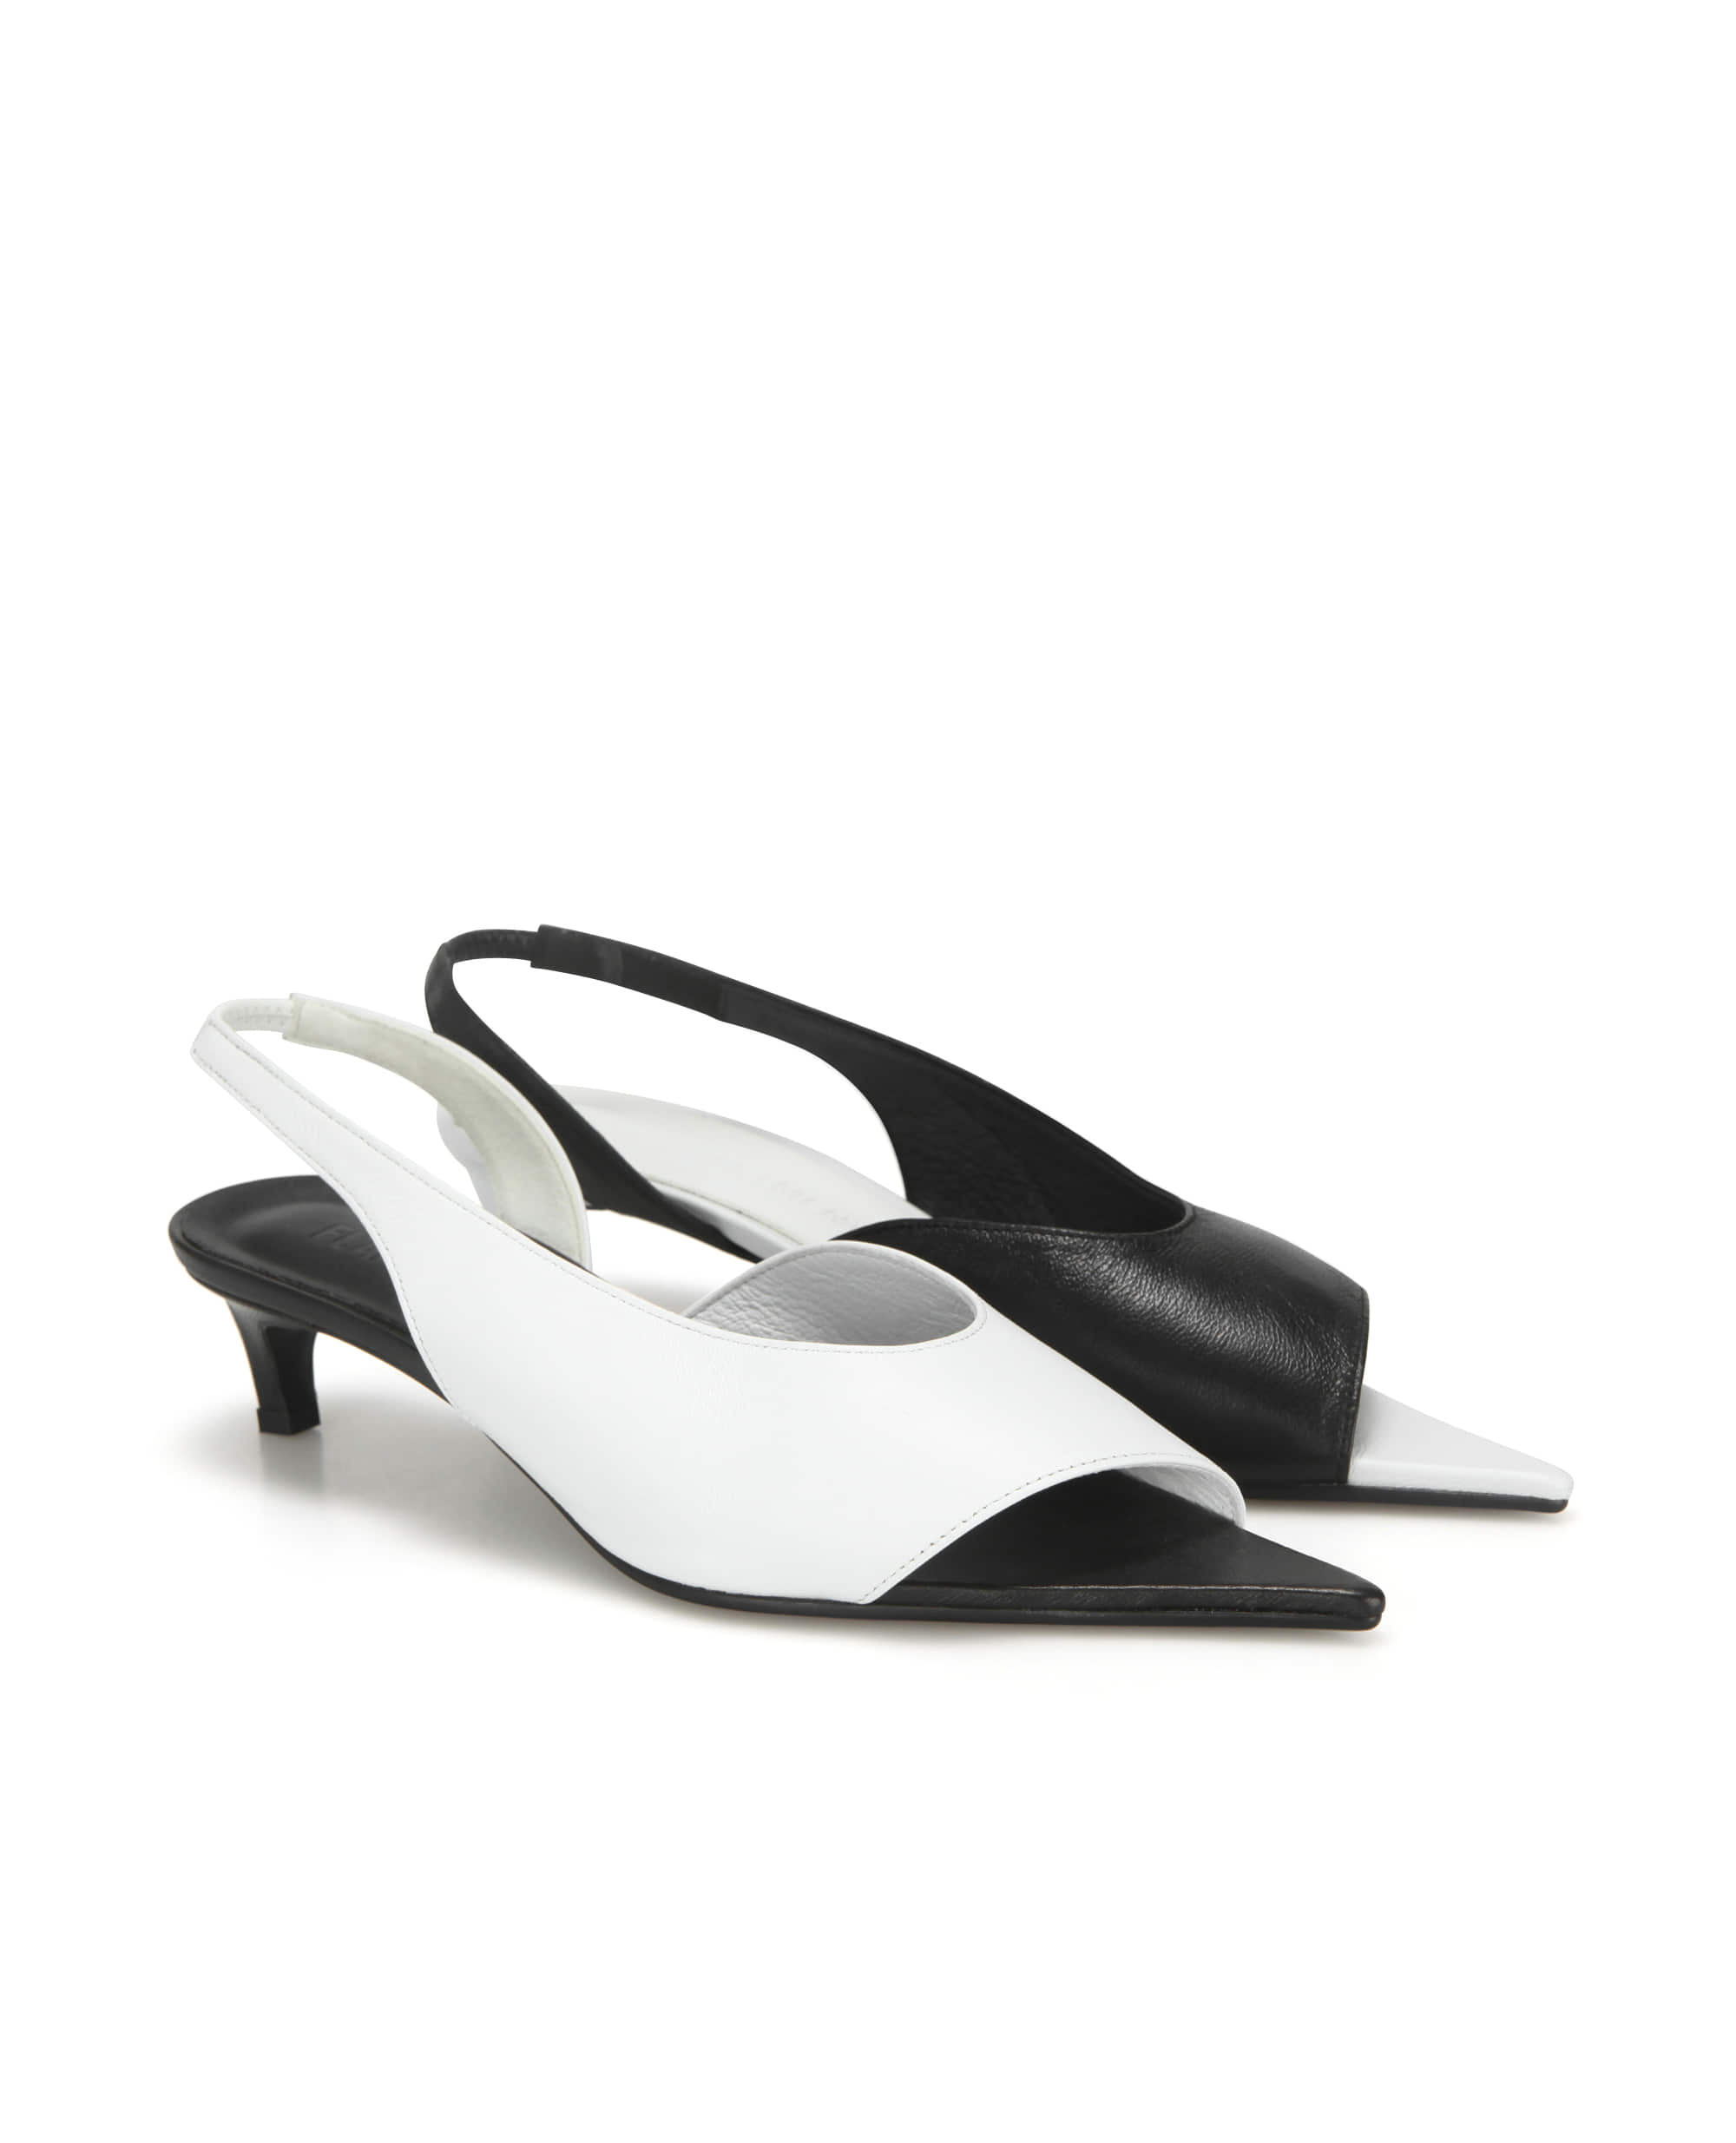 Extreme sharp toe diagonal lined slingbacks | White/Black